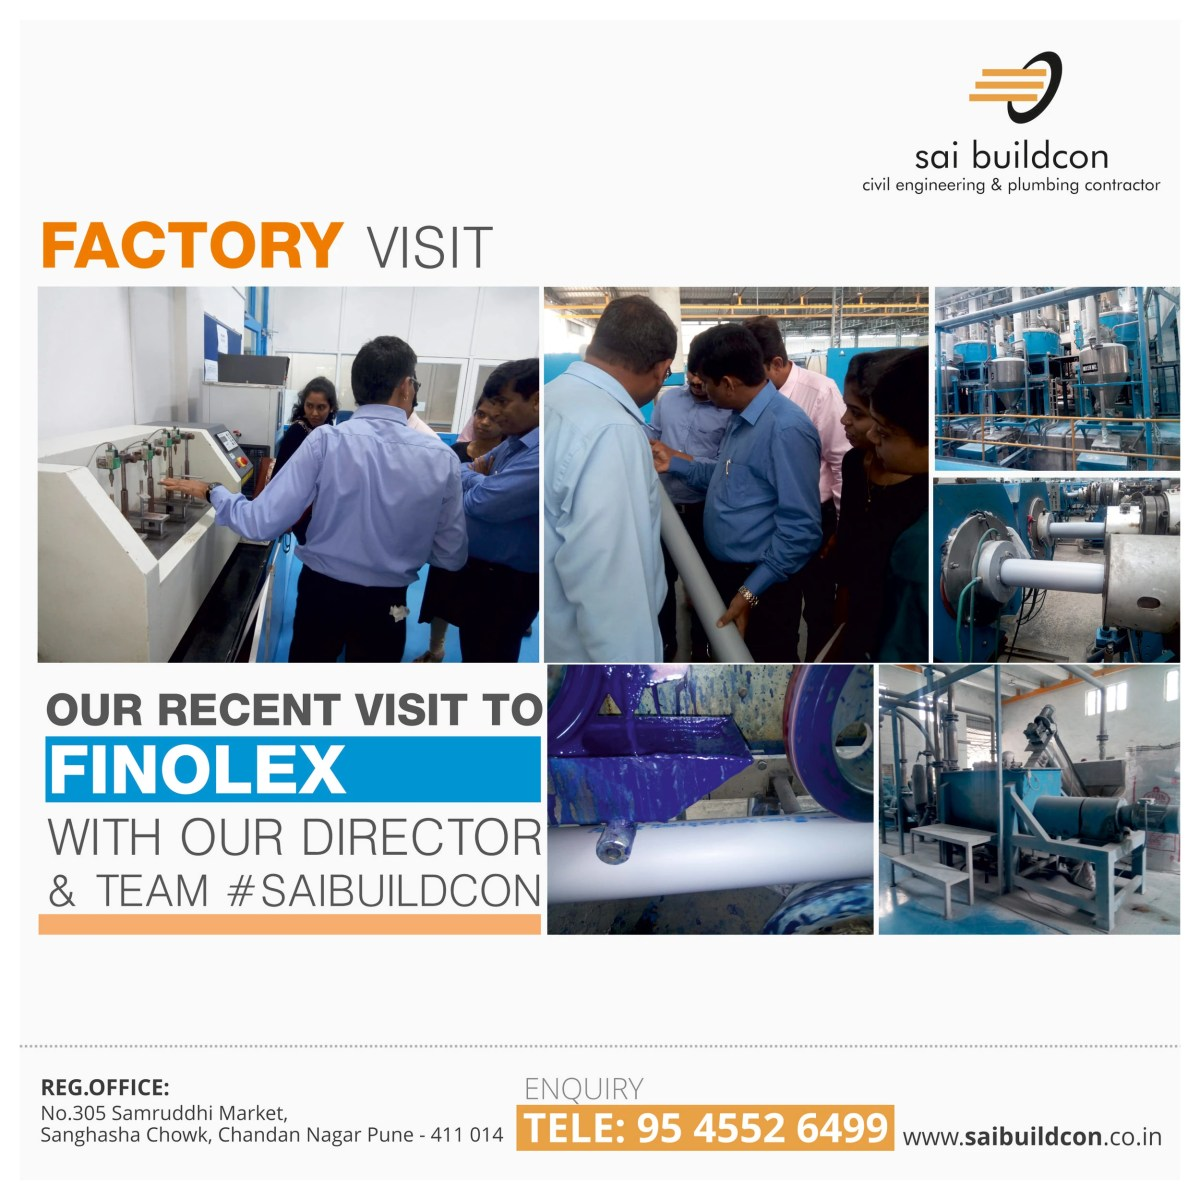 30-July-2018 Site Visit to Finolex by Sai Buildcon Team